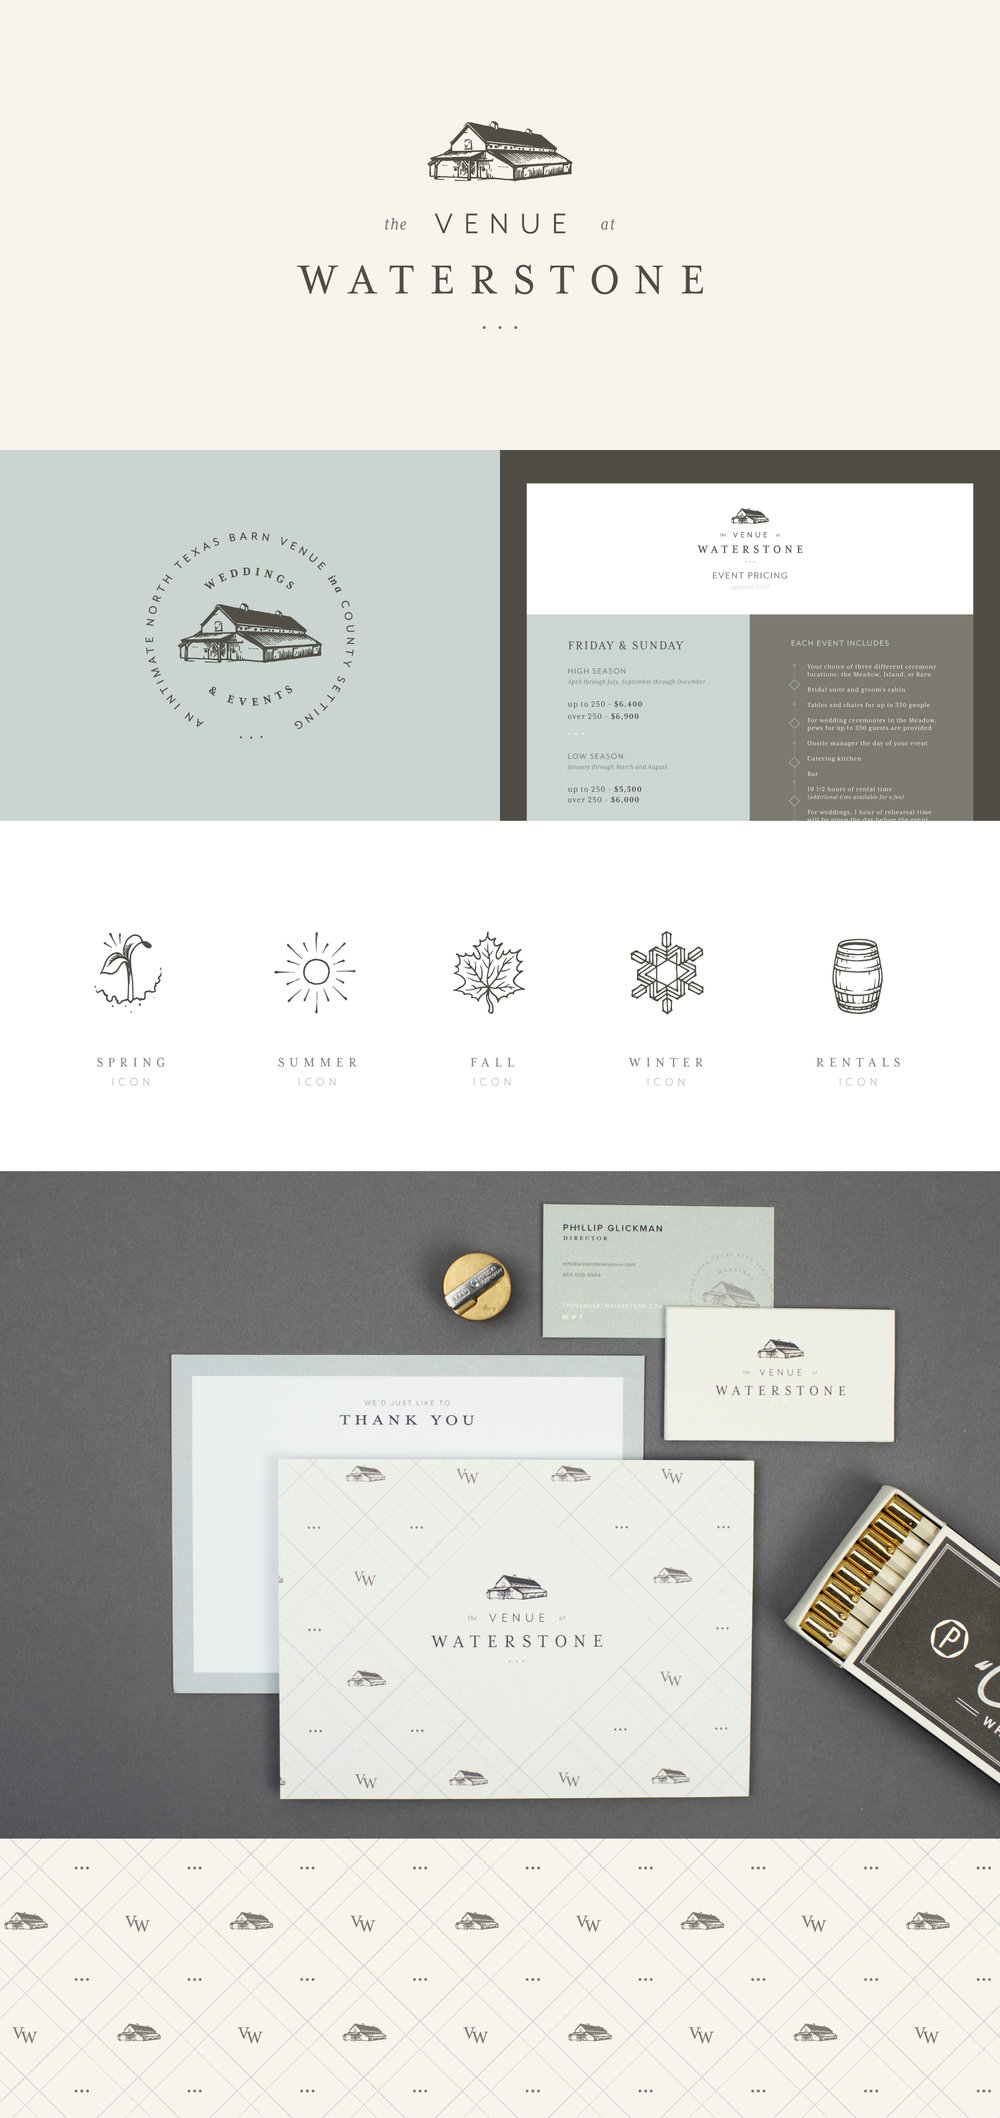 The Venue at Waterstone brand identity | Spruce Rd. | logo design, pattern design, wedding venue, branding, illustration, hand drawn, rustic